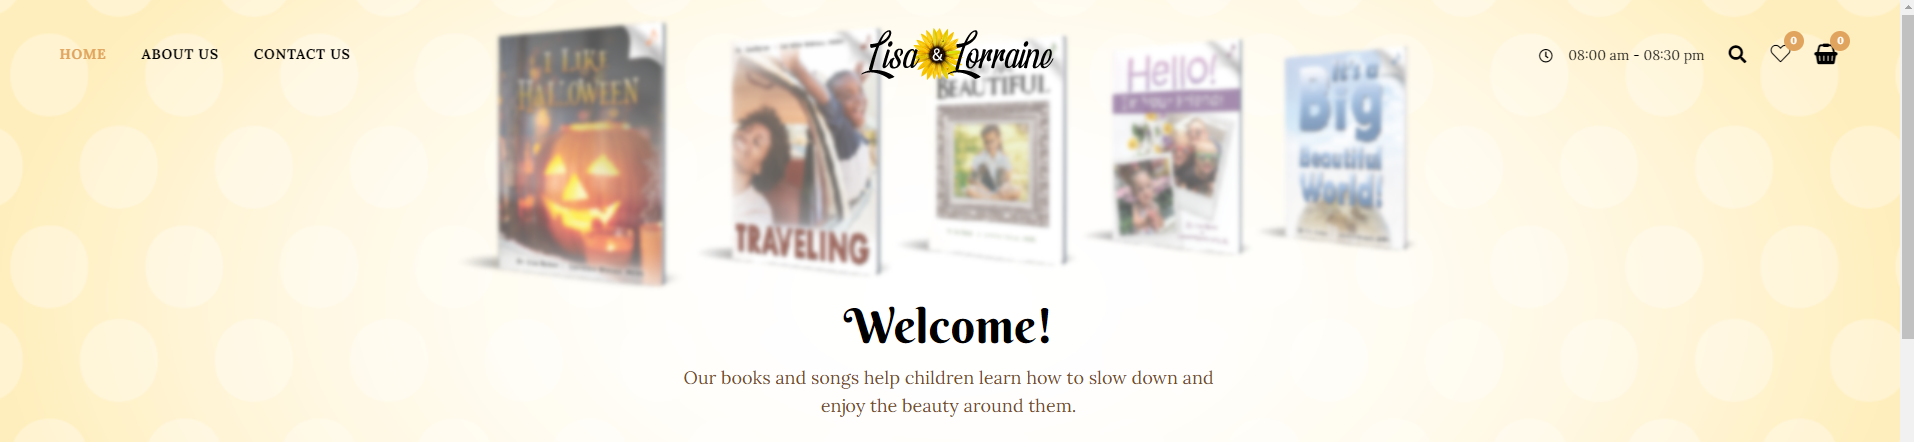 Lisa and Lorraine Music and Books Website Design